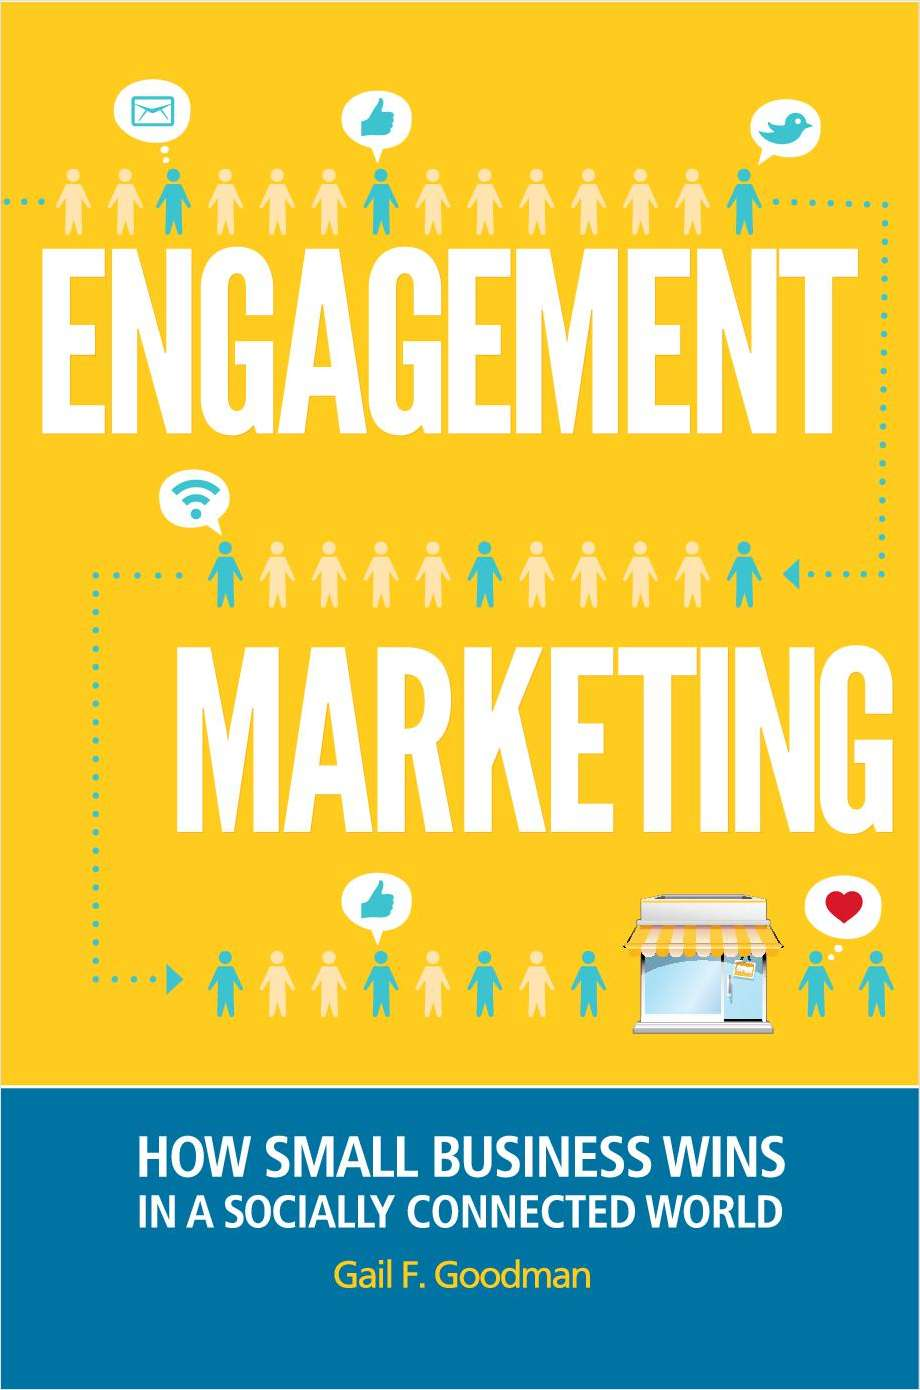 Engagement Marketing: How Small Business Wins in a Socially Connected World-- Complimentary Excerpt